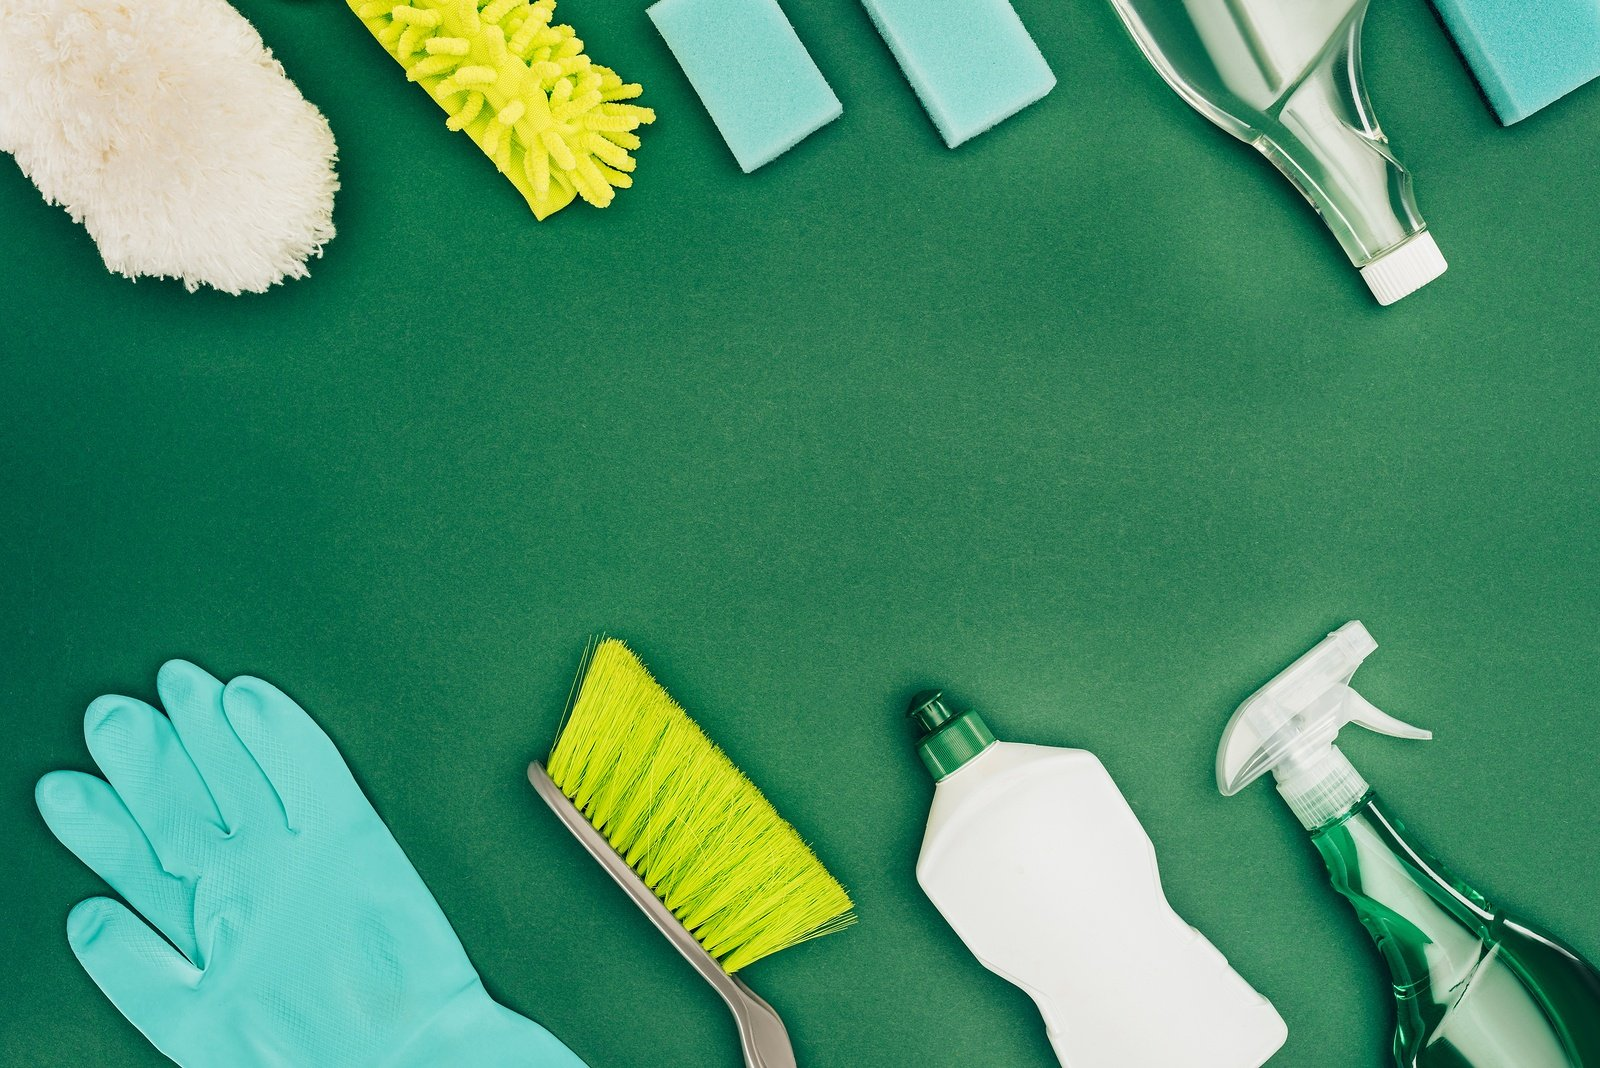 green office cleaning, green commercial cleaning, green cleaning, environmentally safe cleaning products, CIMS, LEEDS